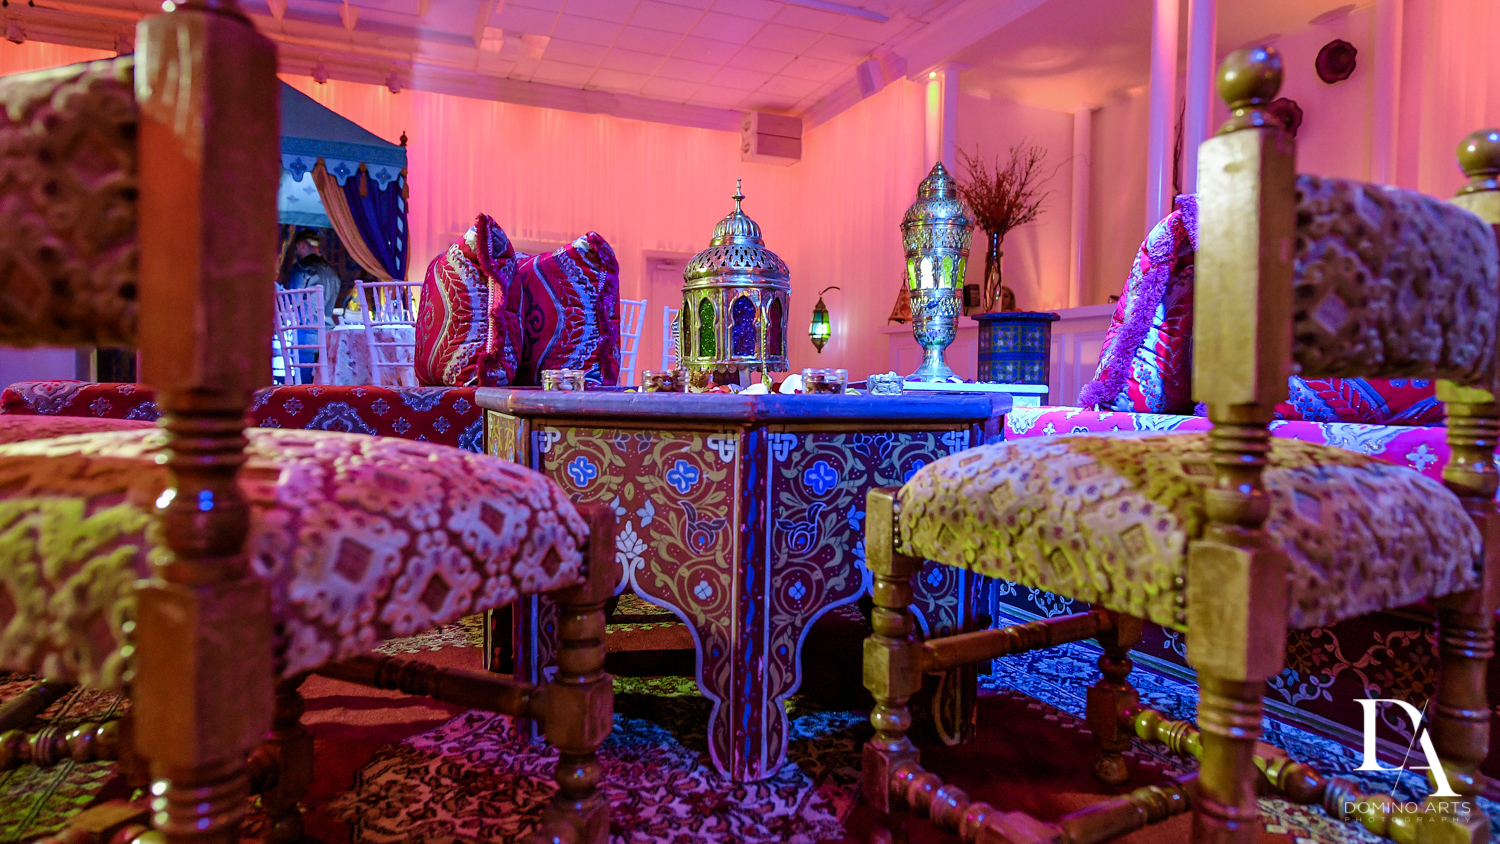 Decor ideas at Traditional Henna Party Photography at Lavan South Florida by Domino Arts